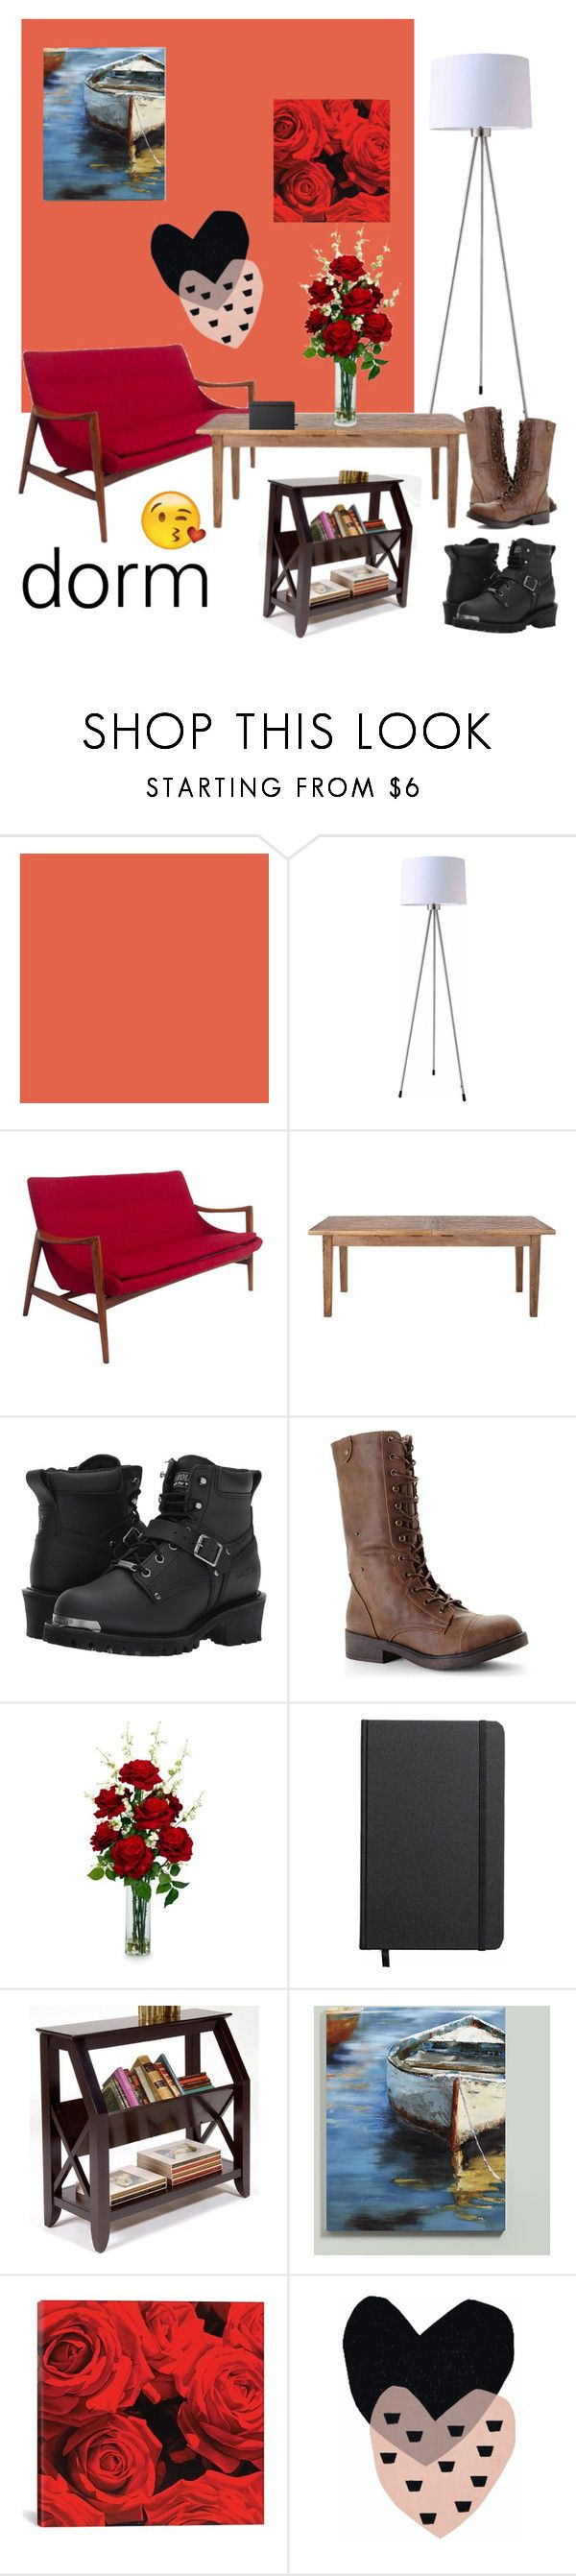 """""""Dorm"""" by pesmica ❤ liked on Polyvore featuring interior, interiors, interior design, home, home decor, interior decorating, ORE, Home Decorators Collection, Carolina and Madden Girl"""